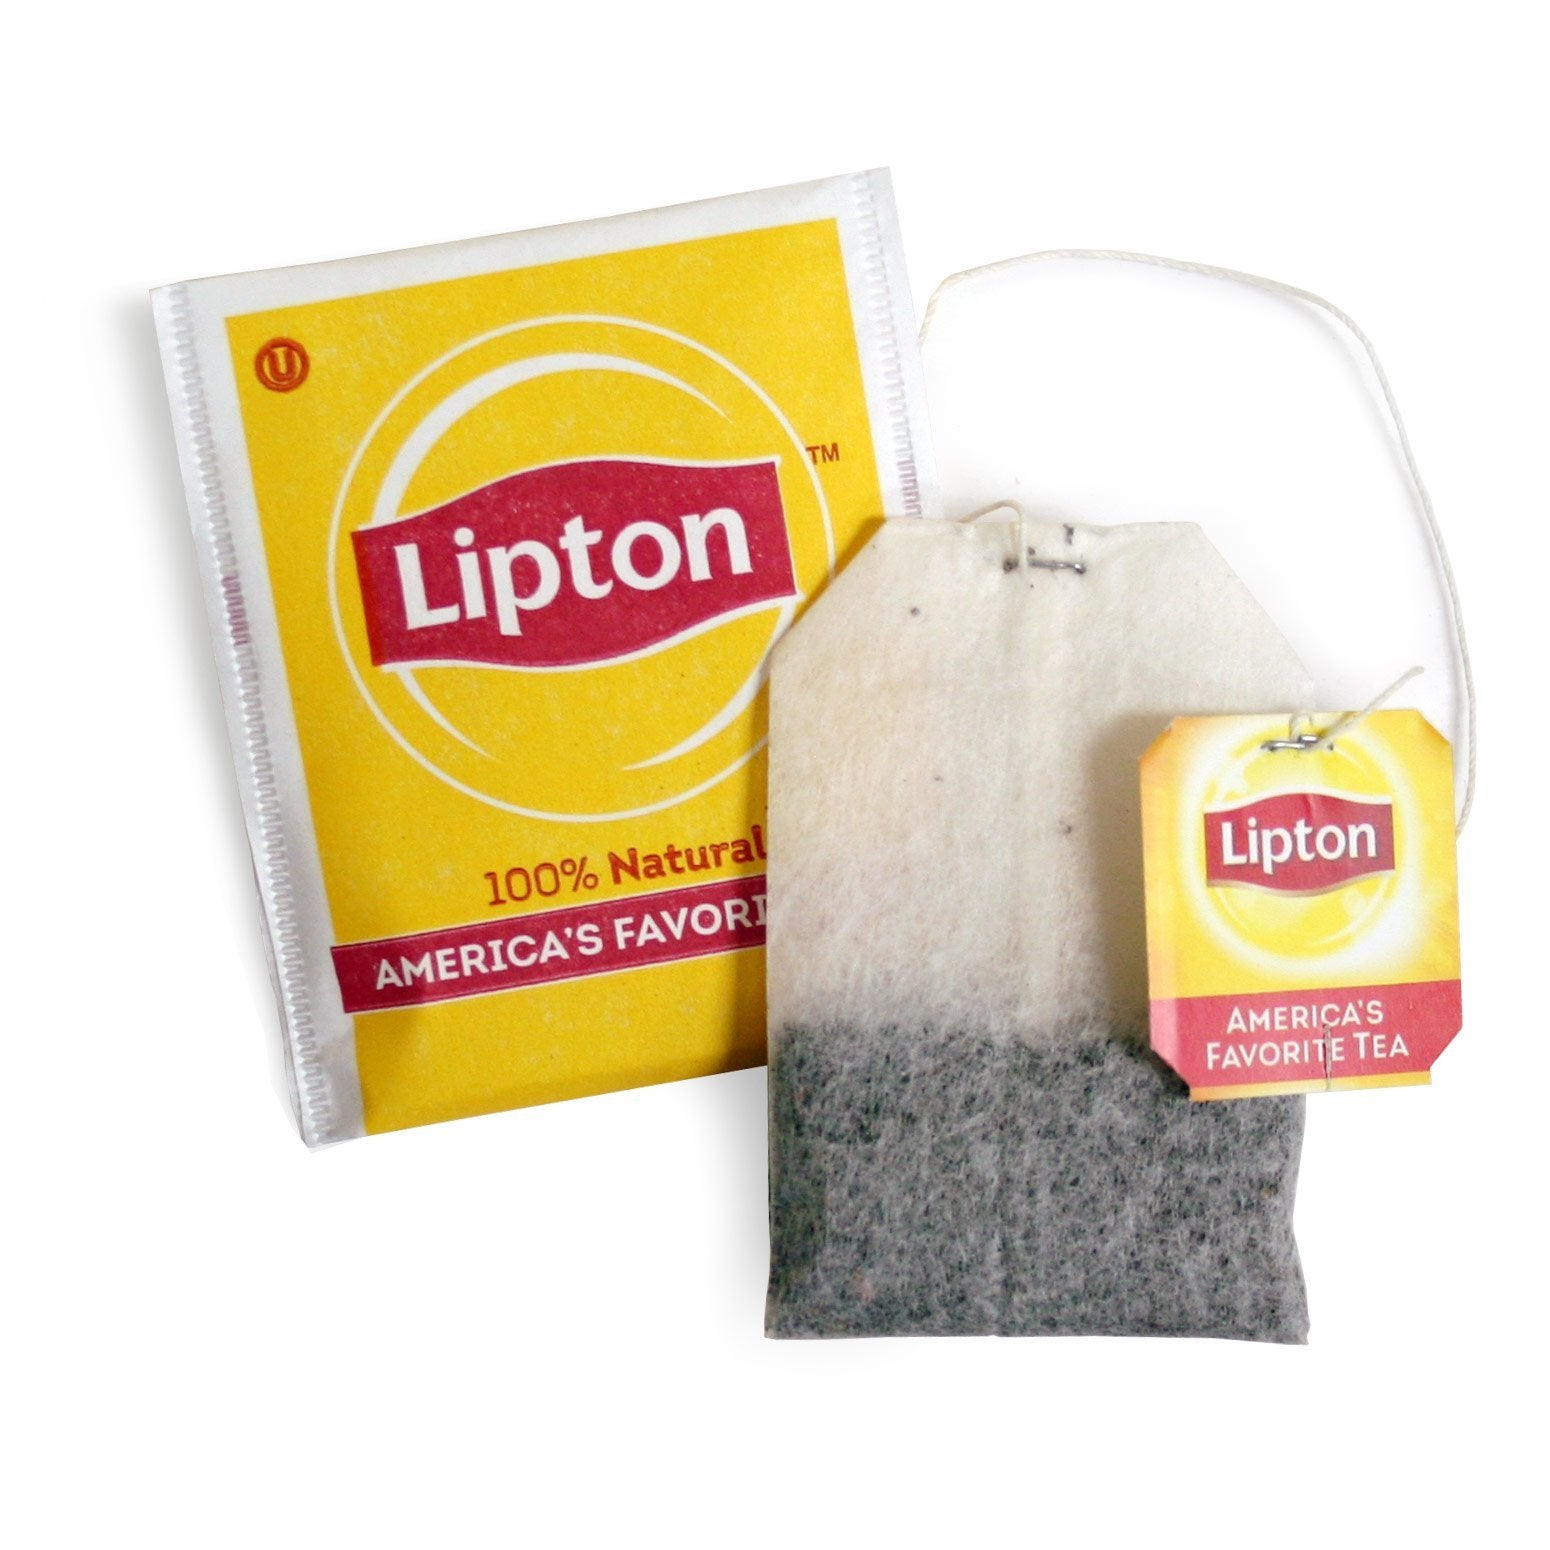 Lipton Tea Bags - 100% Natural, Regular - 100ct Box, Cases of 10 Boxes from Vistar